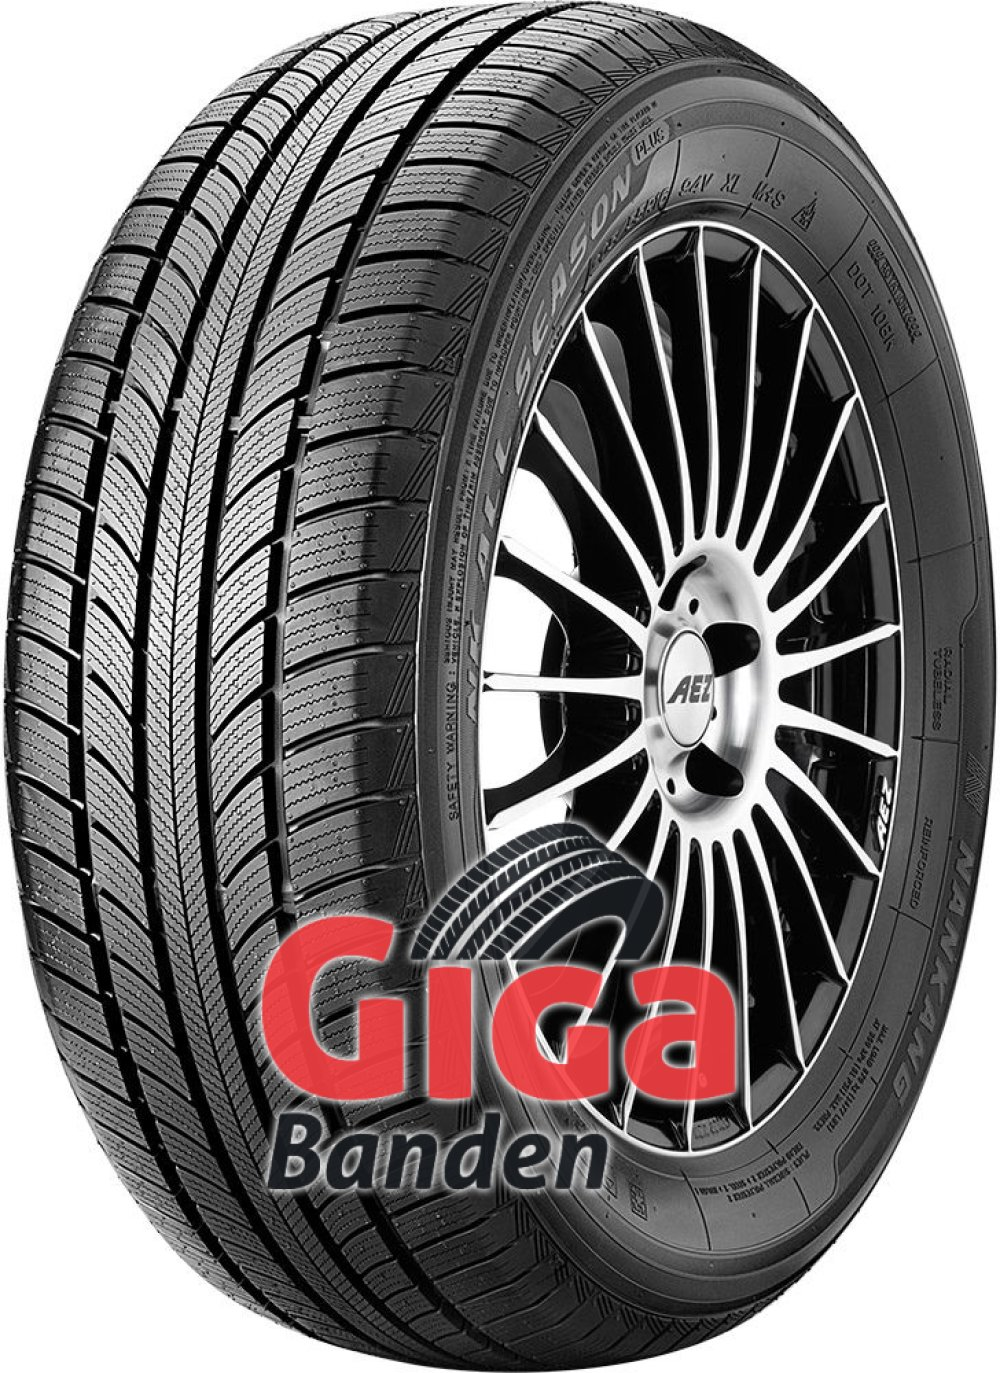 Nankang All Season Plus N-607+ ( 185/55 R15 86H XL )